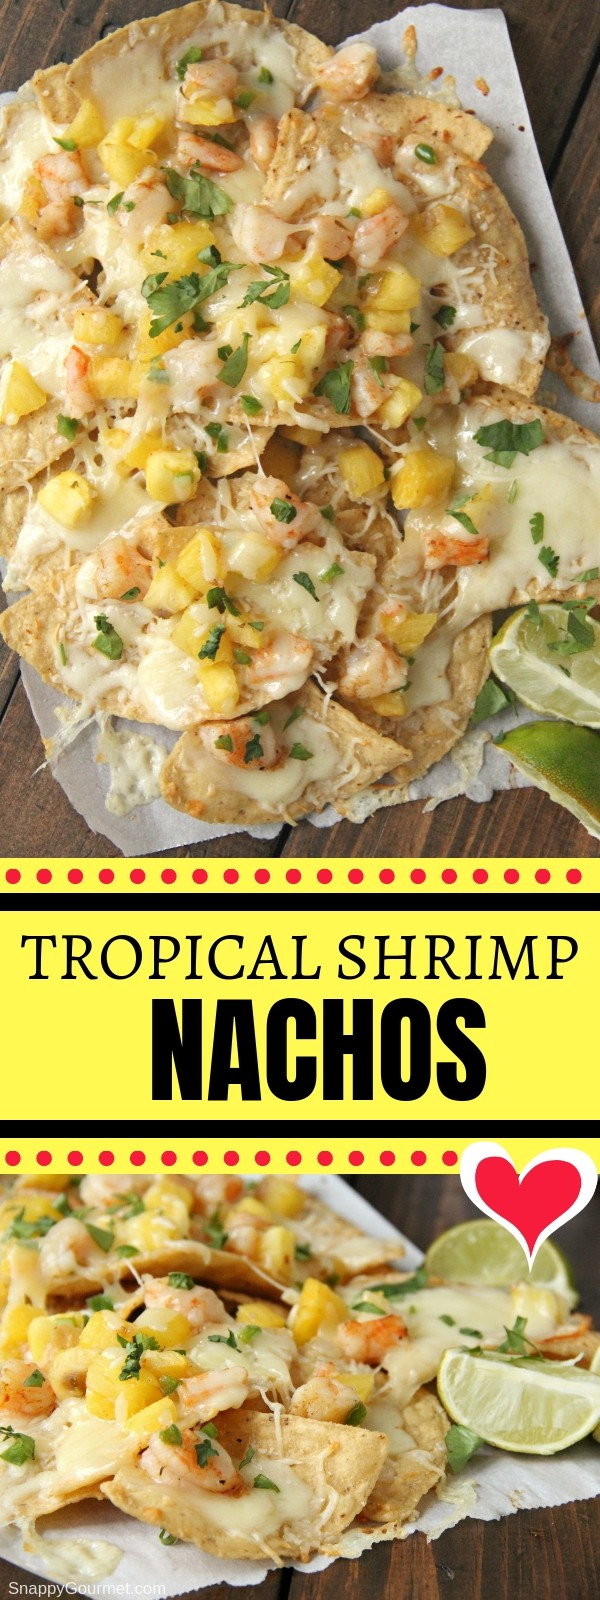 Shrimp Nachos Tropical Style Snappy Gourmet